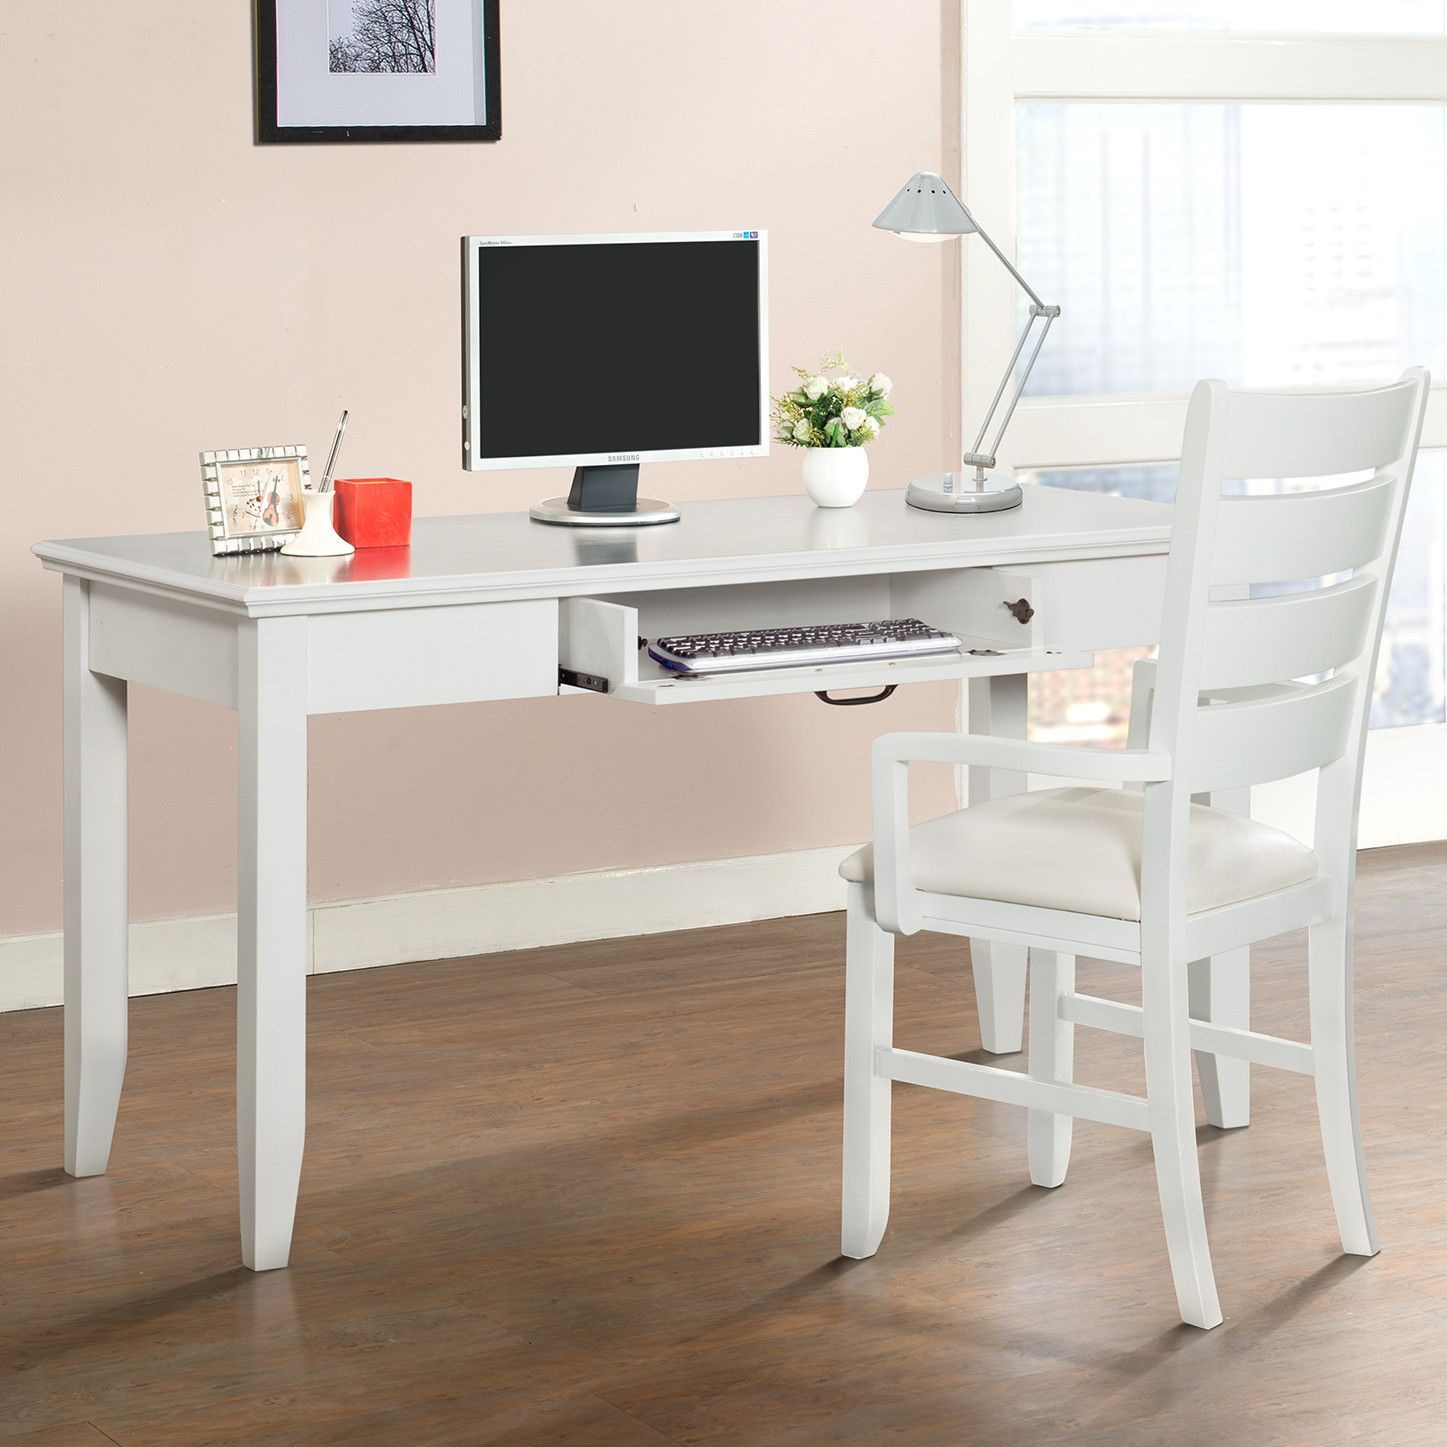 Clover Computer Desk and Chair Set | Products | Desk, chair ...